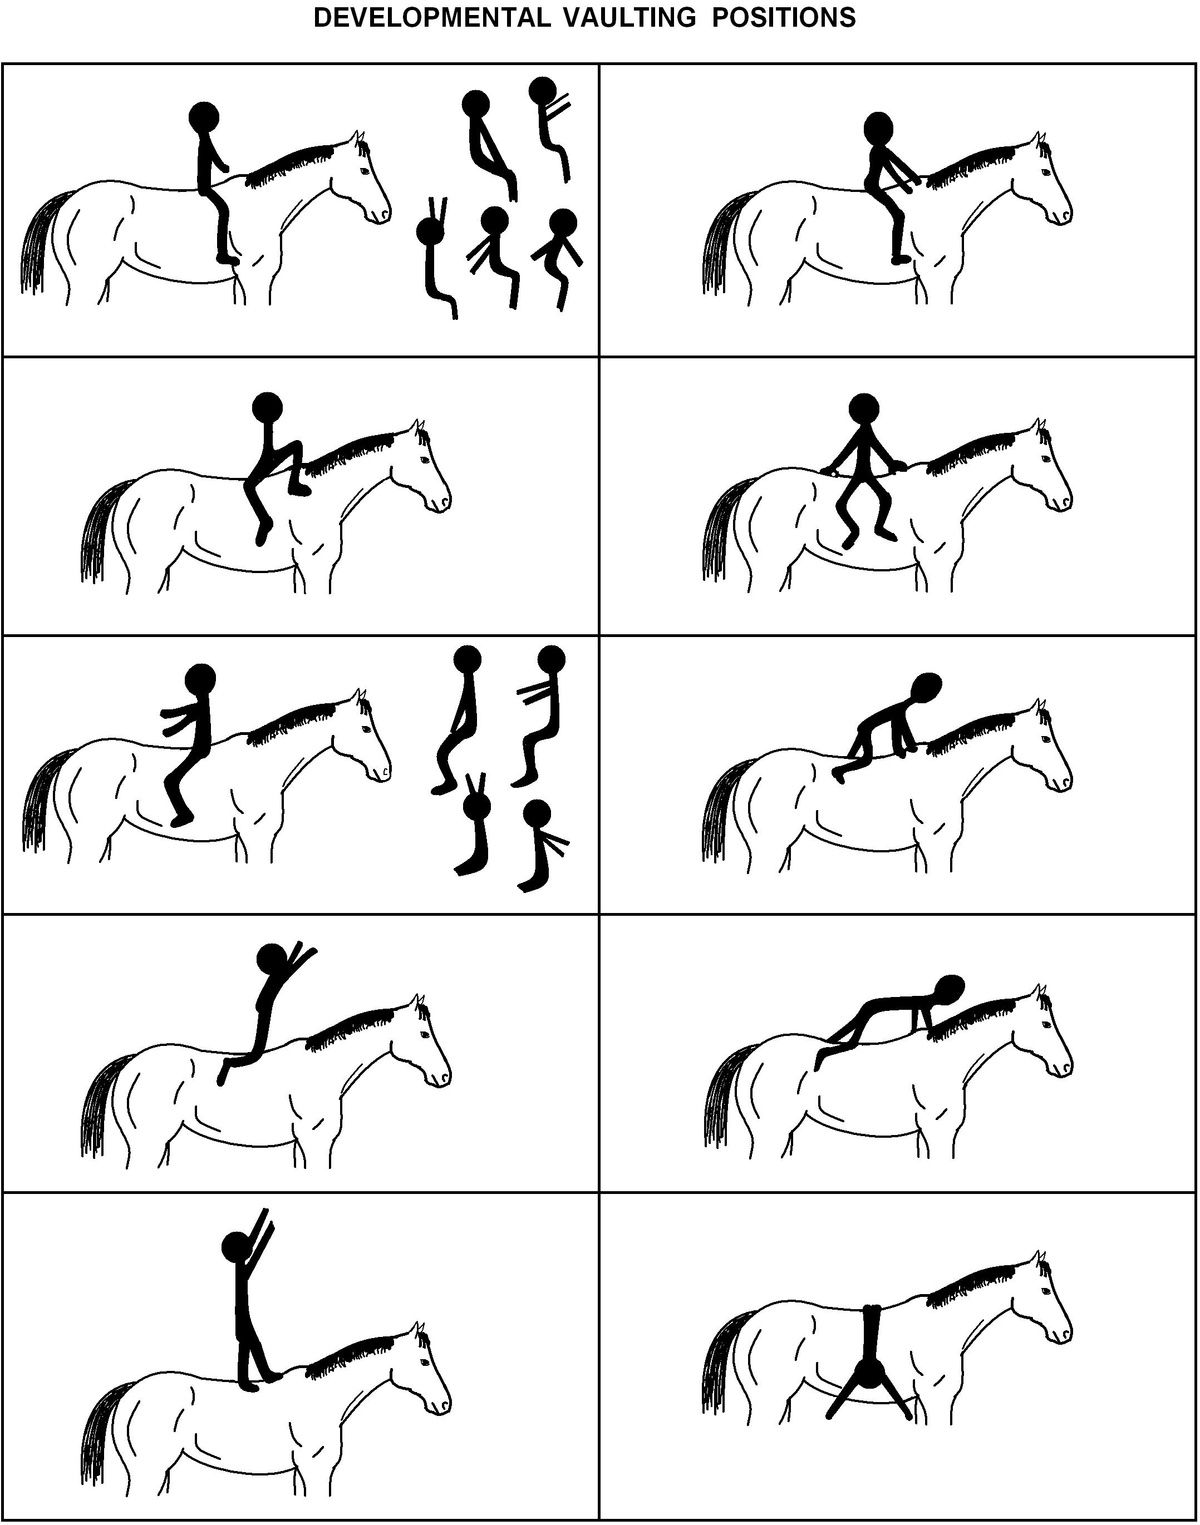 Developmental vaulting positions to use in hippotherapy